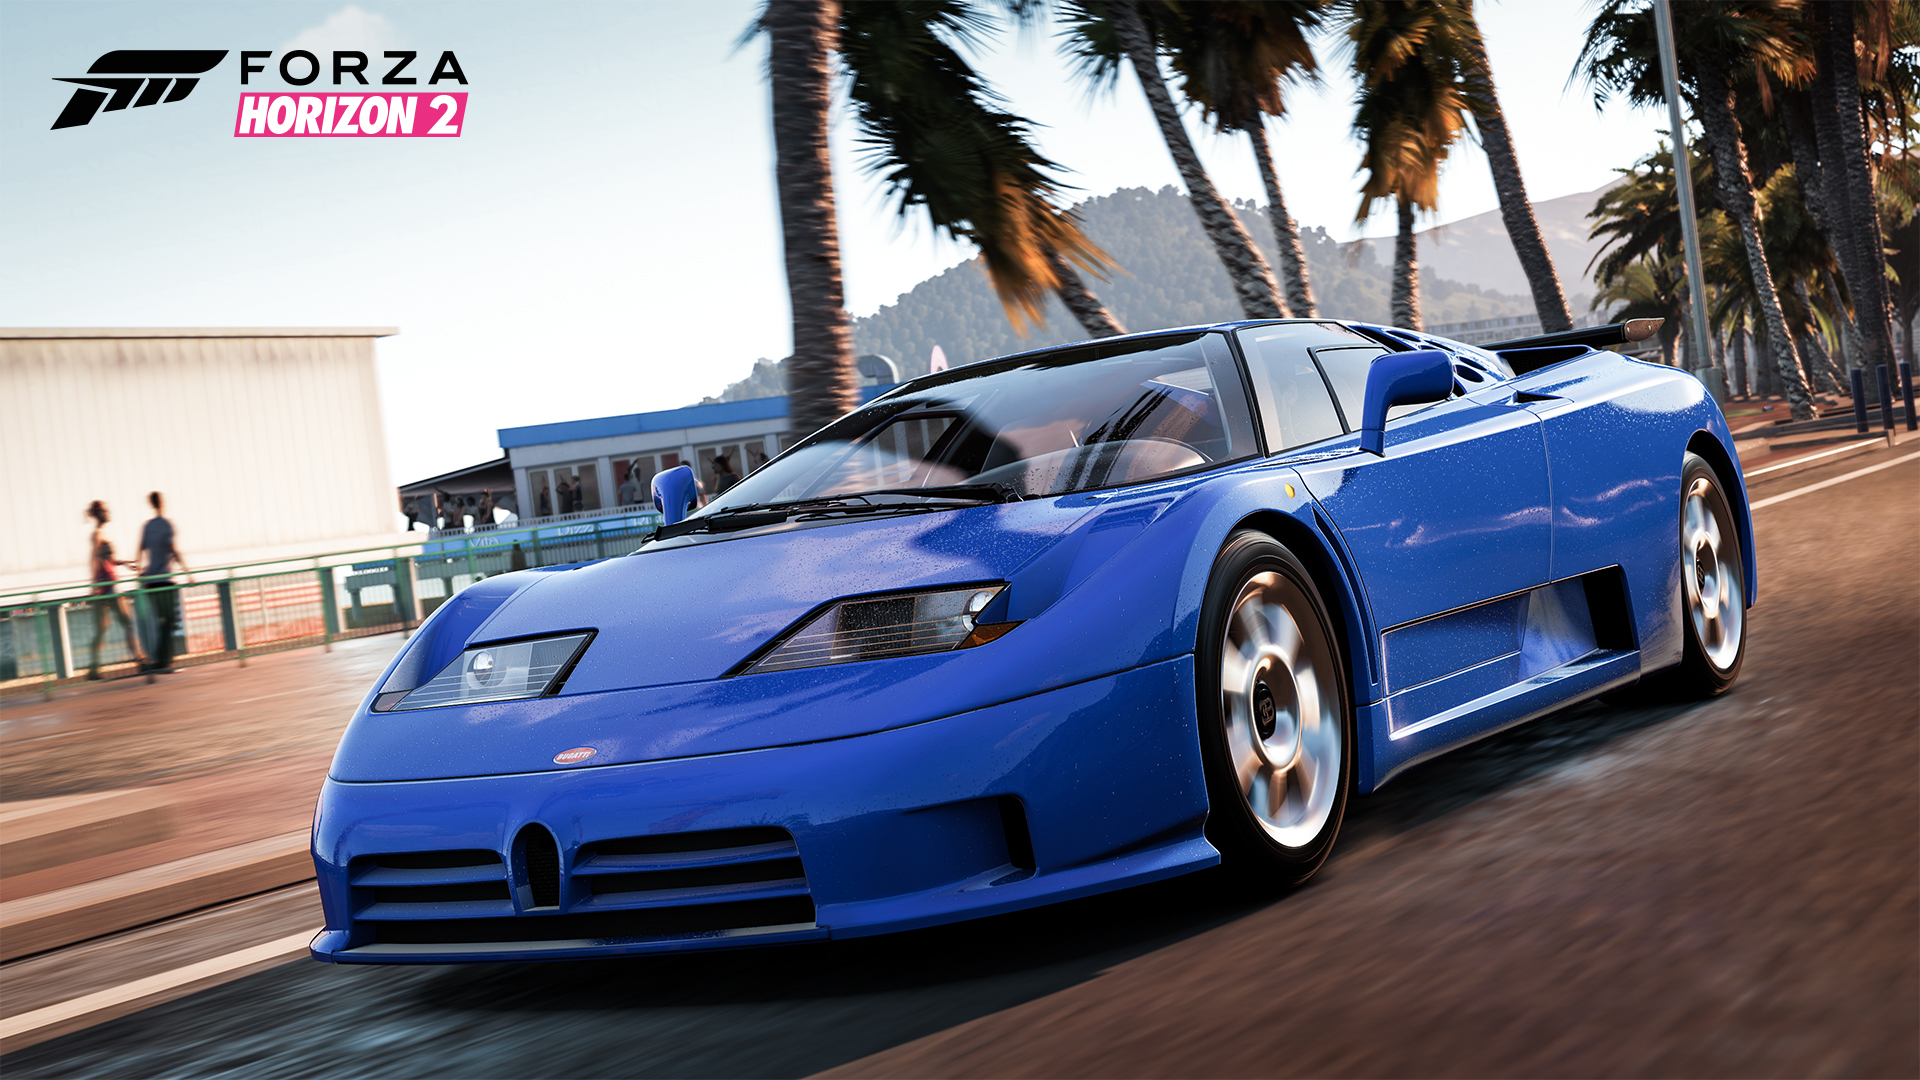 alpinestars car pack available now for forza horizon 2 on. Black Bedroom Furniture Sets. Home Design Ideas